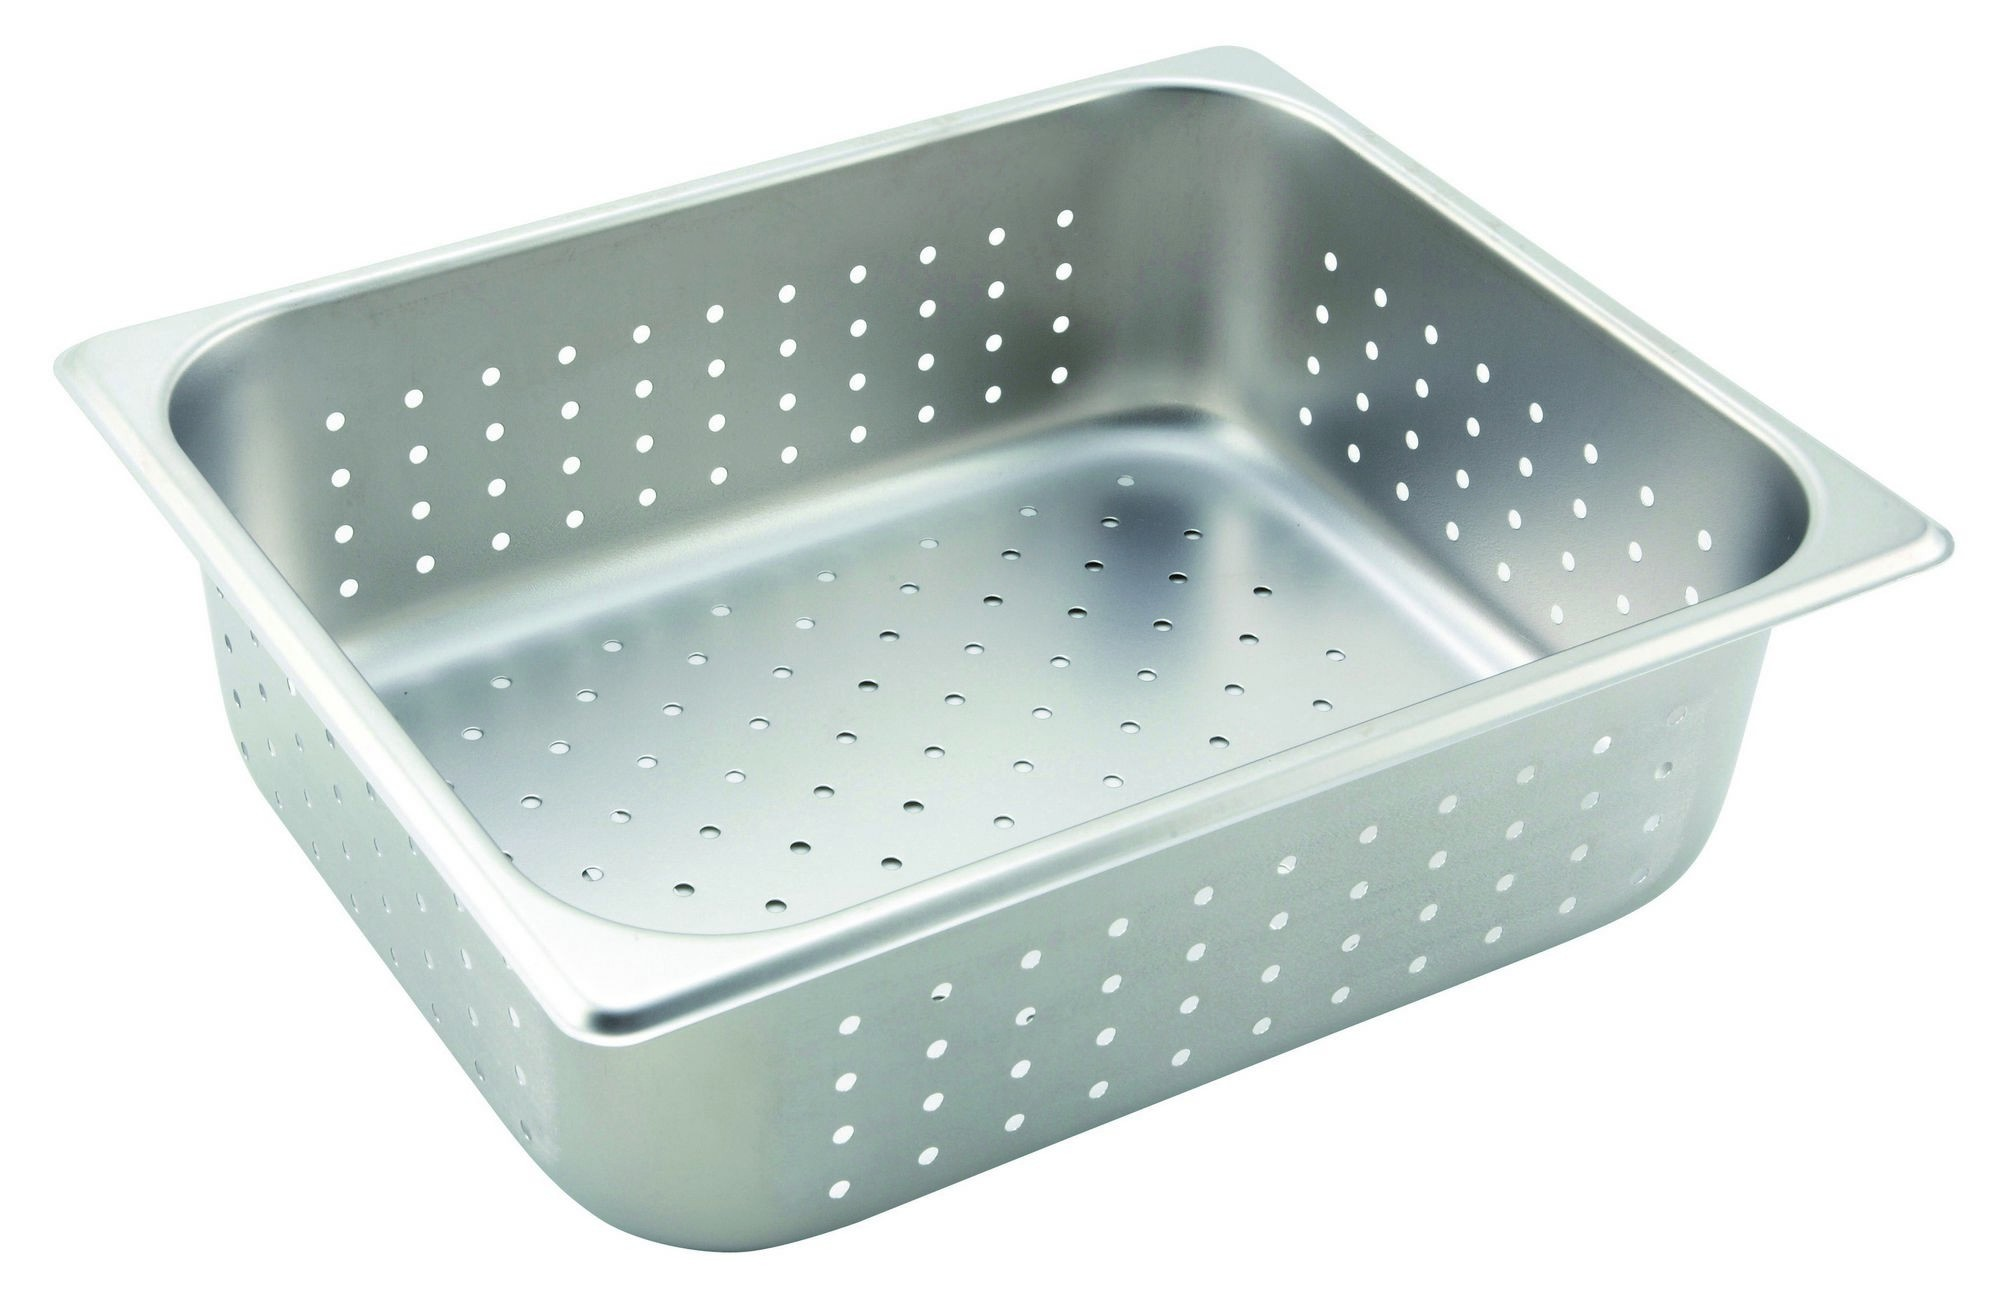 Stainless Steel Perforated Half-Size Steam Table Pan - 4